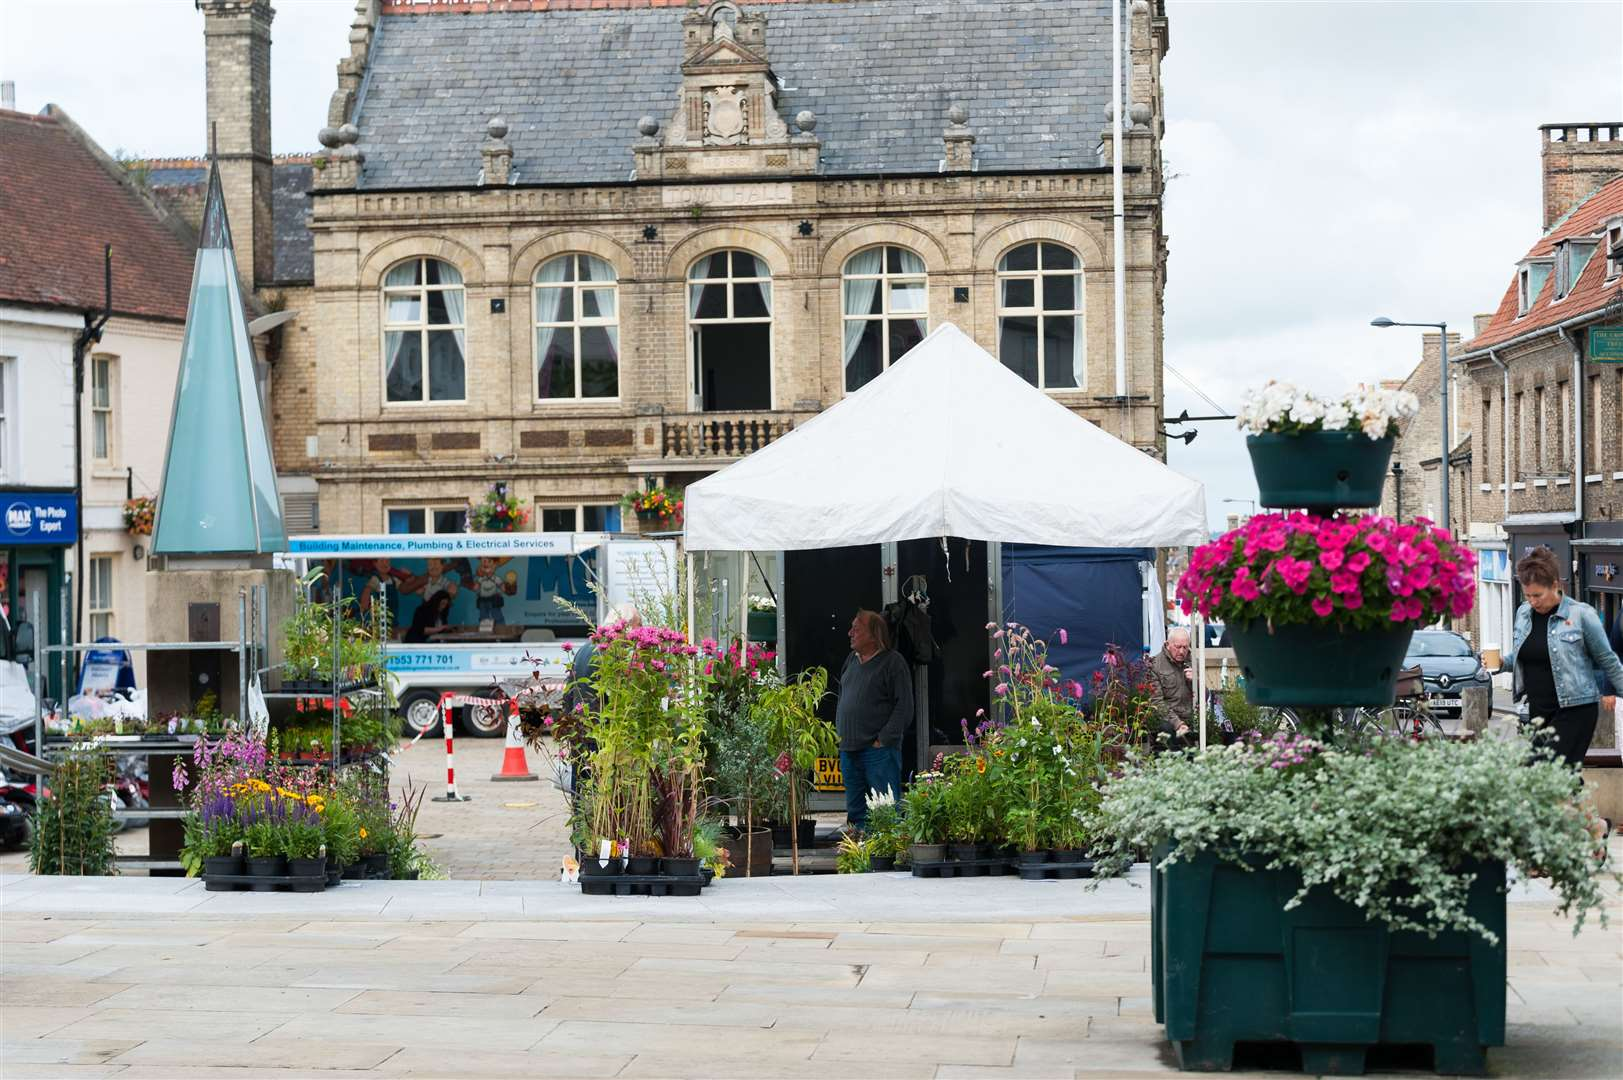 Councillors will consider proposed new rules for Downham's market this week.